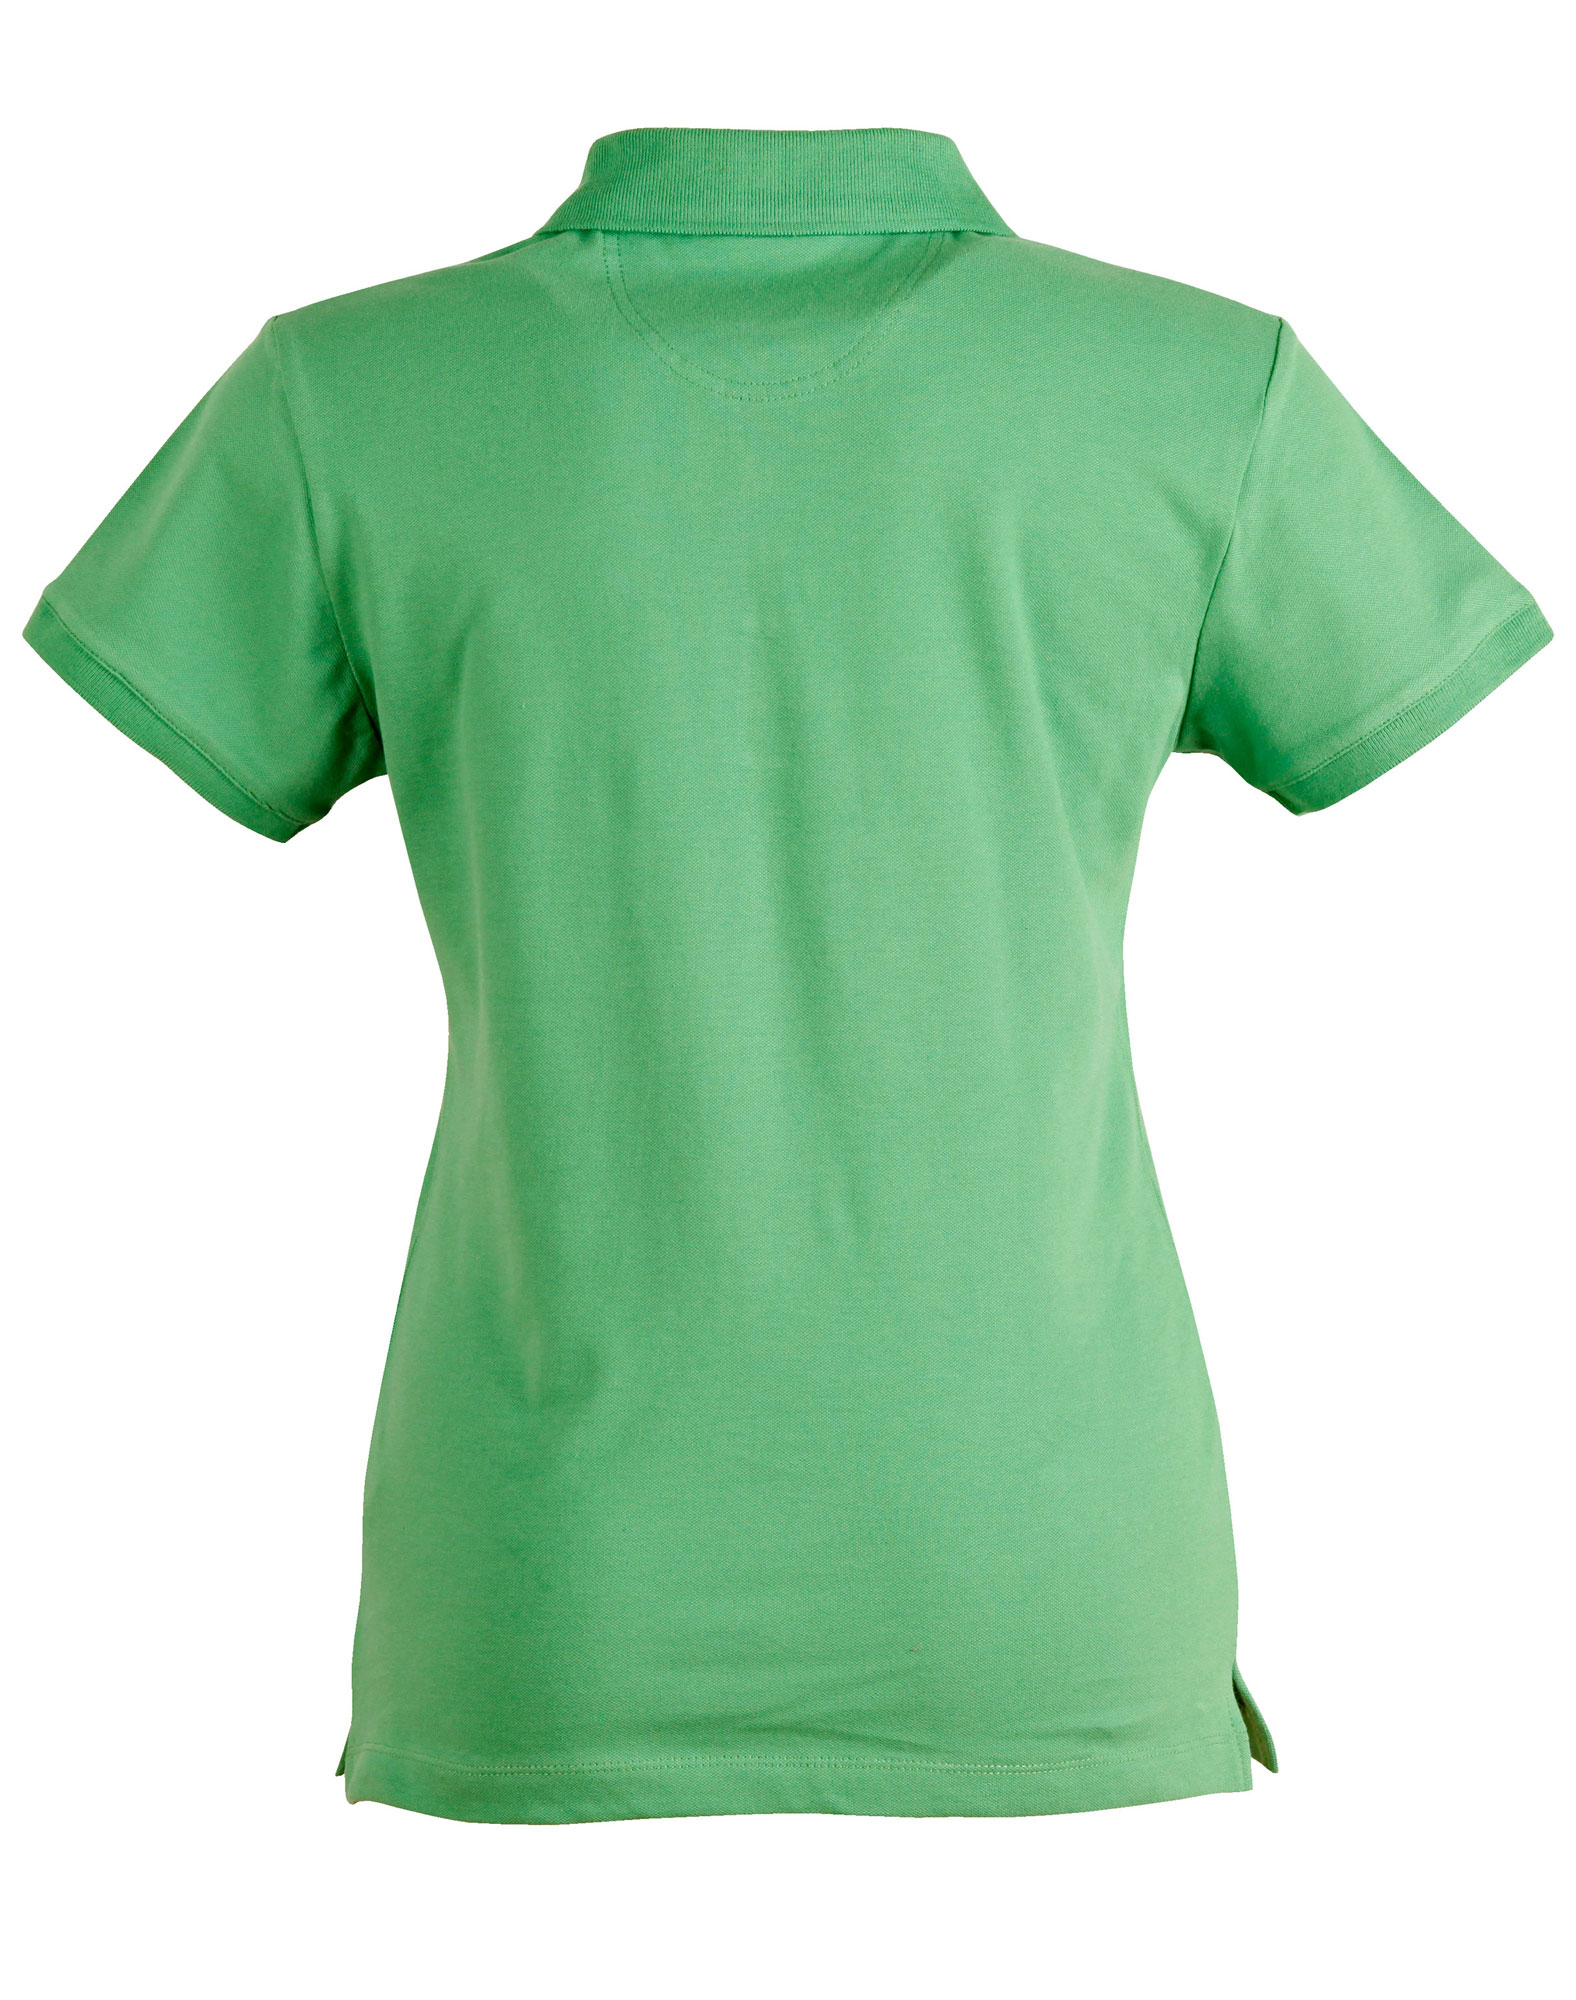 https://s3-ap-southeast-1.amazonaws.com/ws-imgs/POLOSHIRTS/PS56_GreenTea_Back_big.jpg